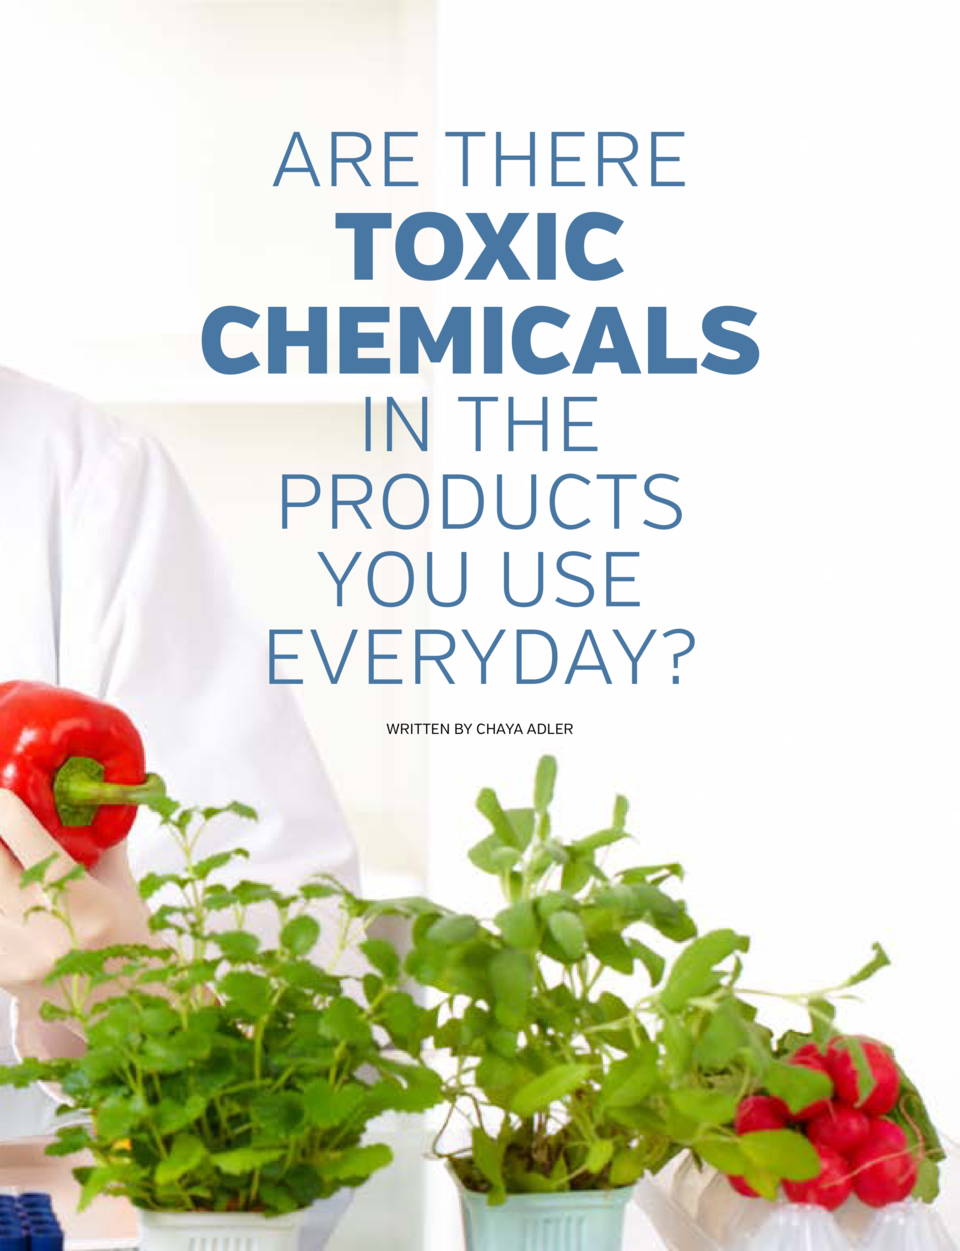 ARE THERE  TOXIC CHEMICALS IN THE PRODUCTS YOU USE EVERYDAY  WRITTEN BY CHAYA ADLER  66   fyimagazineny.com  67   fyimagaz...